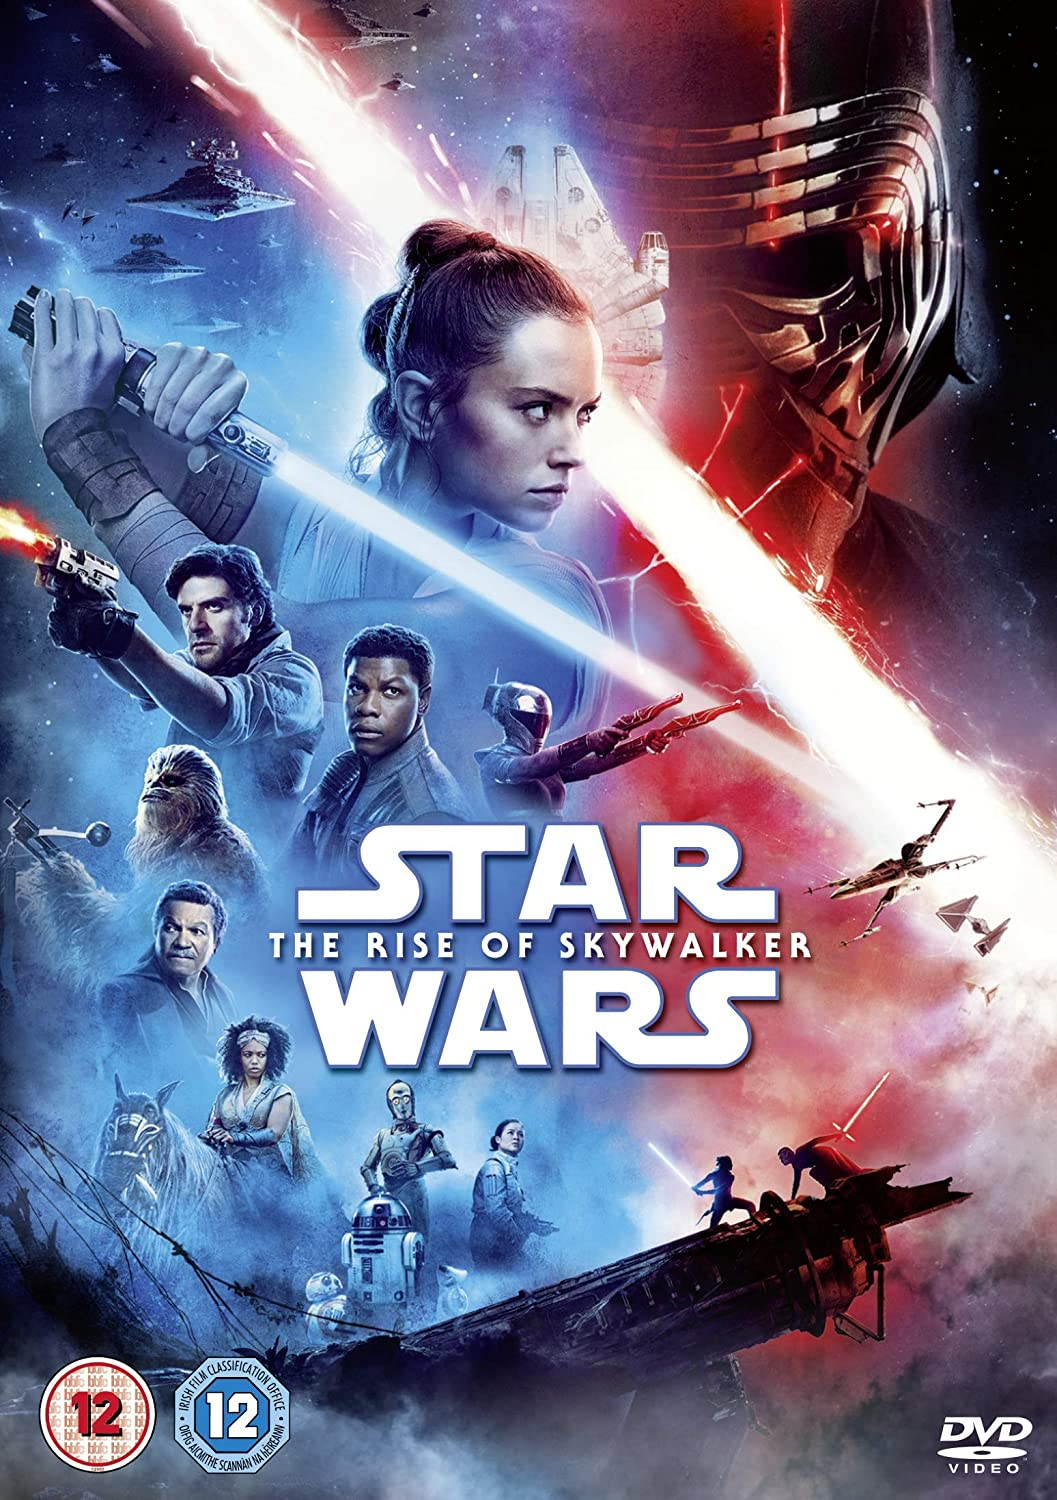 Amazon.com: Star Wars: The Rise of Skywalker [DVD] [2019]: Movies & TV